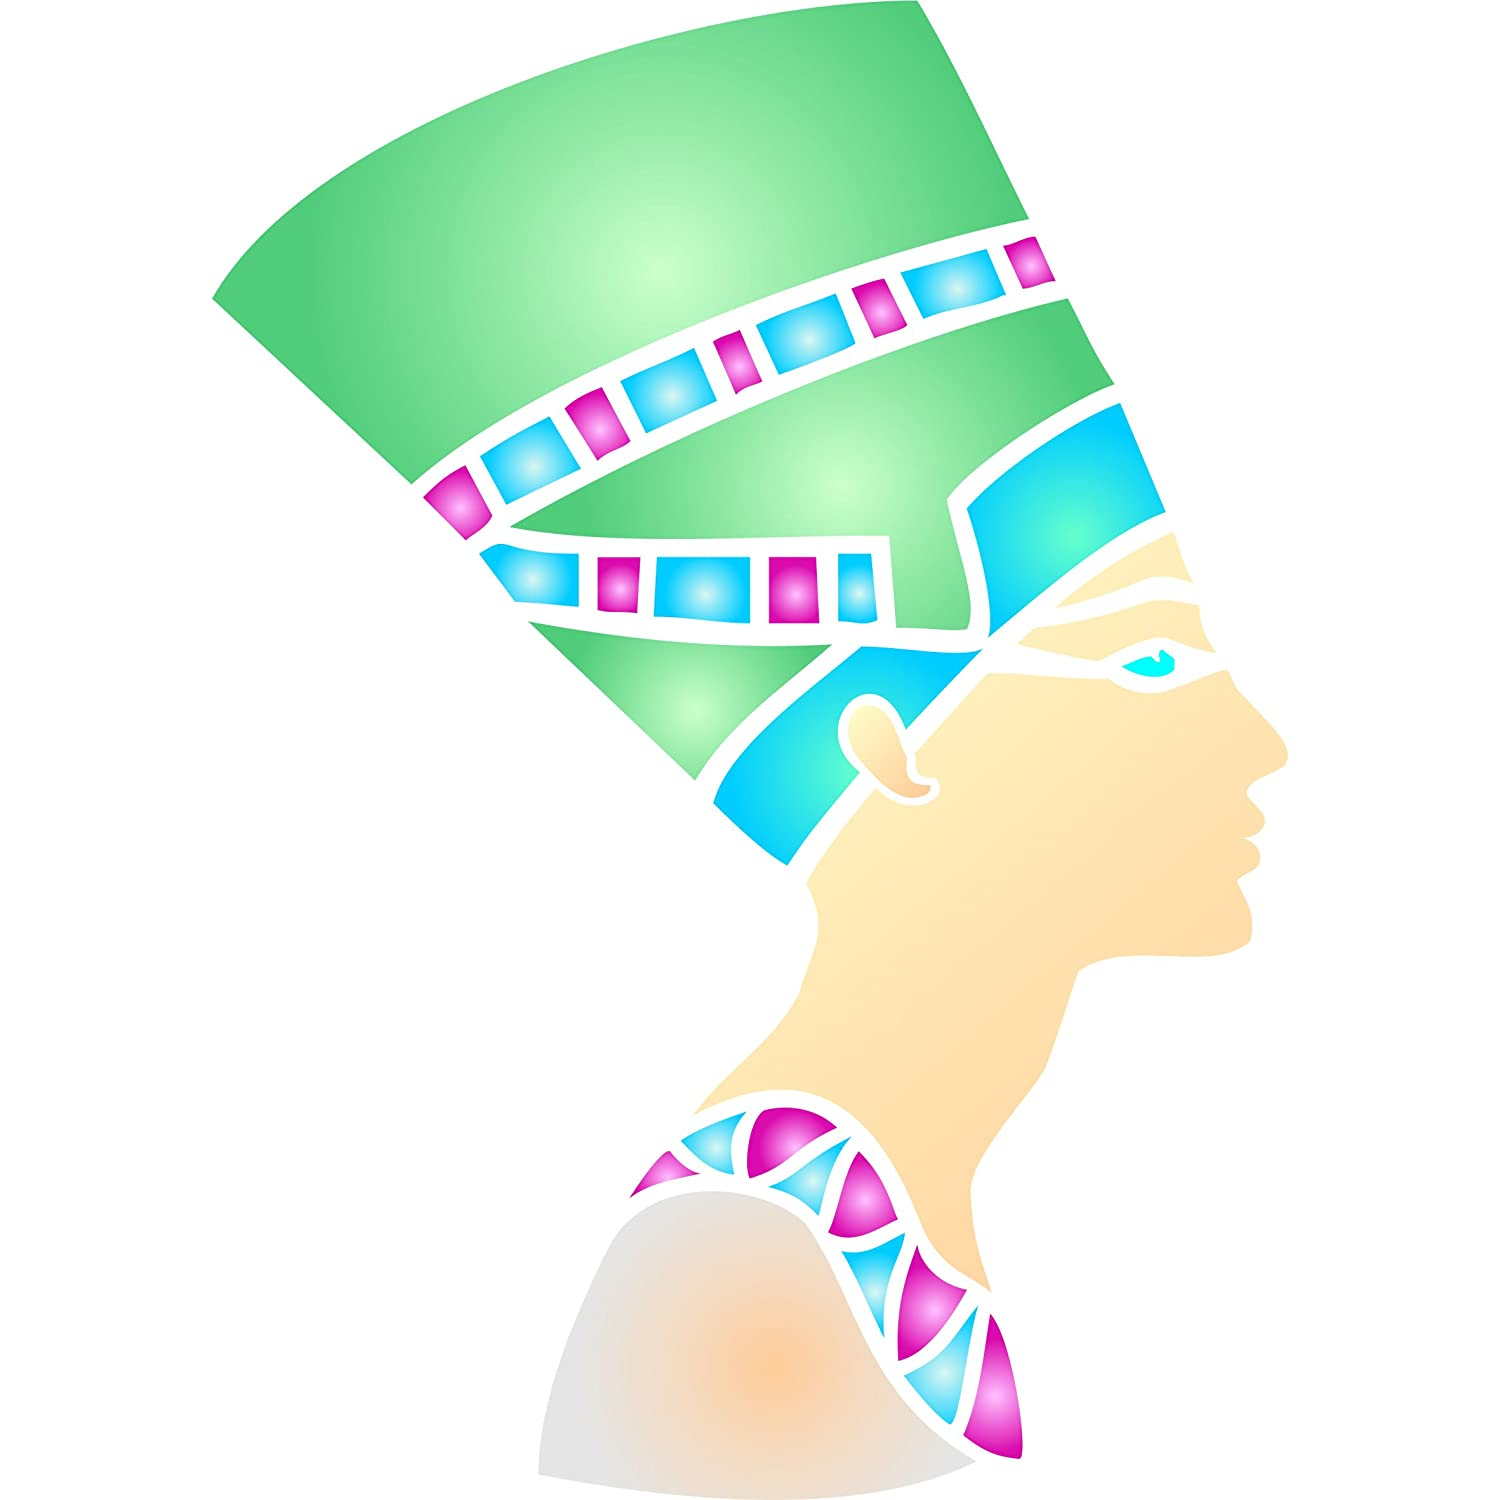 Amazon nefertiti stencil size 65w x 9h reusable wall amazon nefertiti stencil size 65w x 9h reusable wall stencils for painting best quality egyptian ideas use on walls floors fabrics glass amipublicfo Gallery